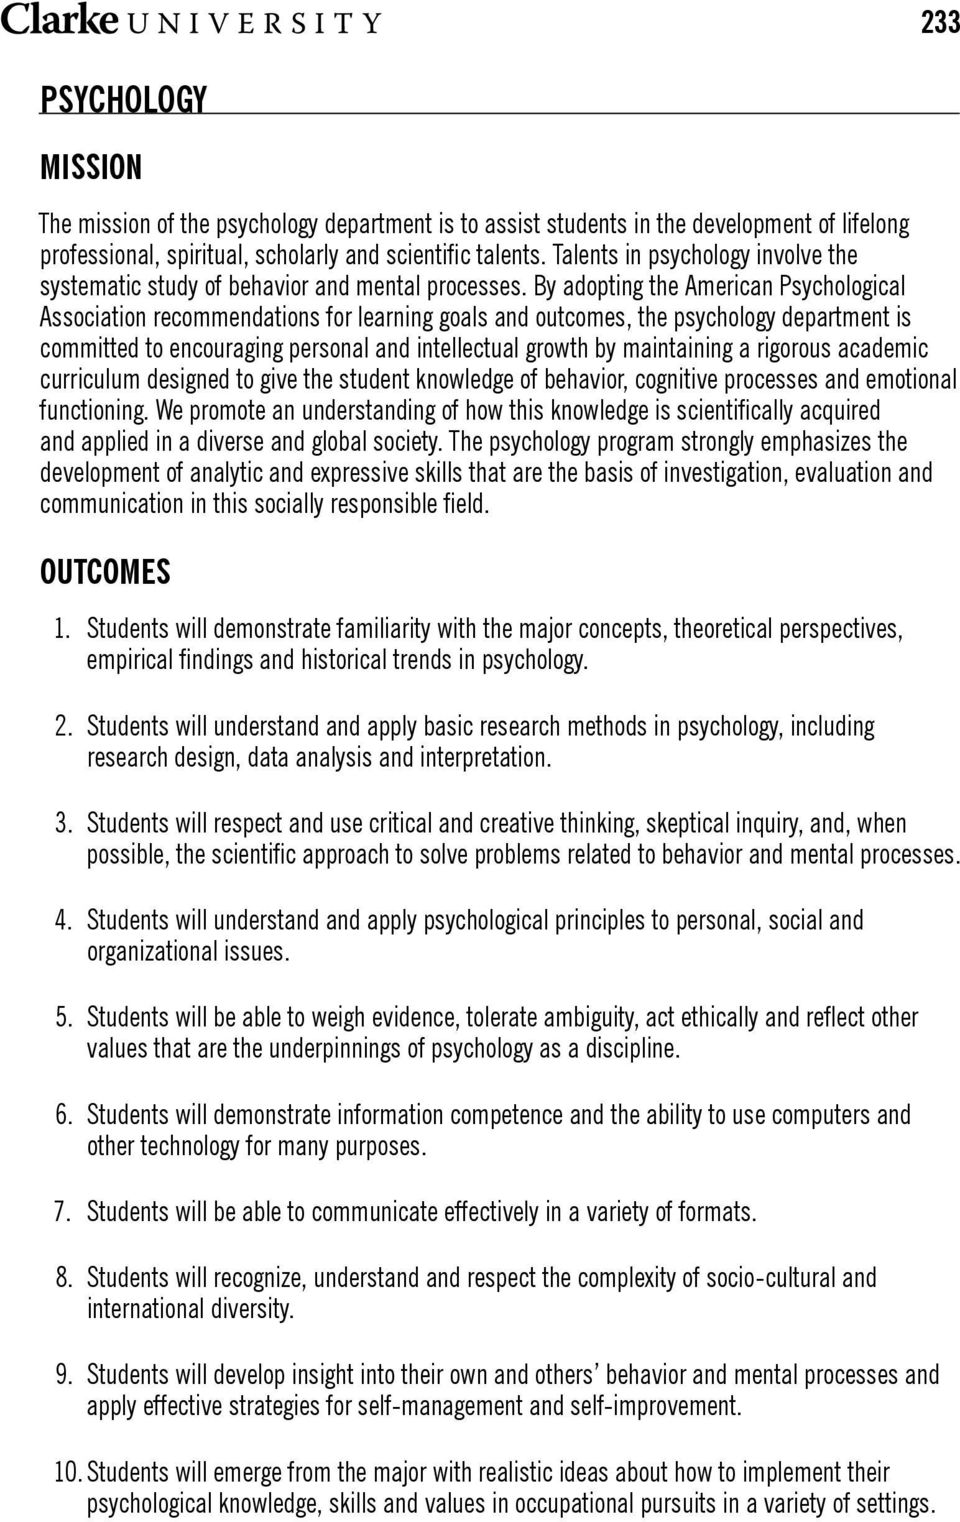 Psychology mission outcomes pdf by adopting the american psychological association recommendations for learning goals and outcomes the psychology department altavistaventures Gallery